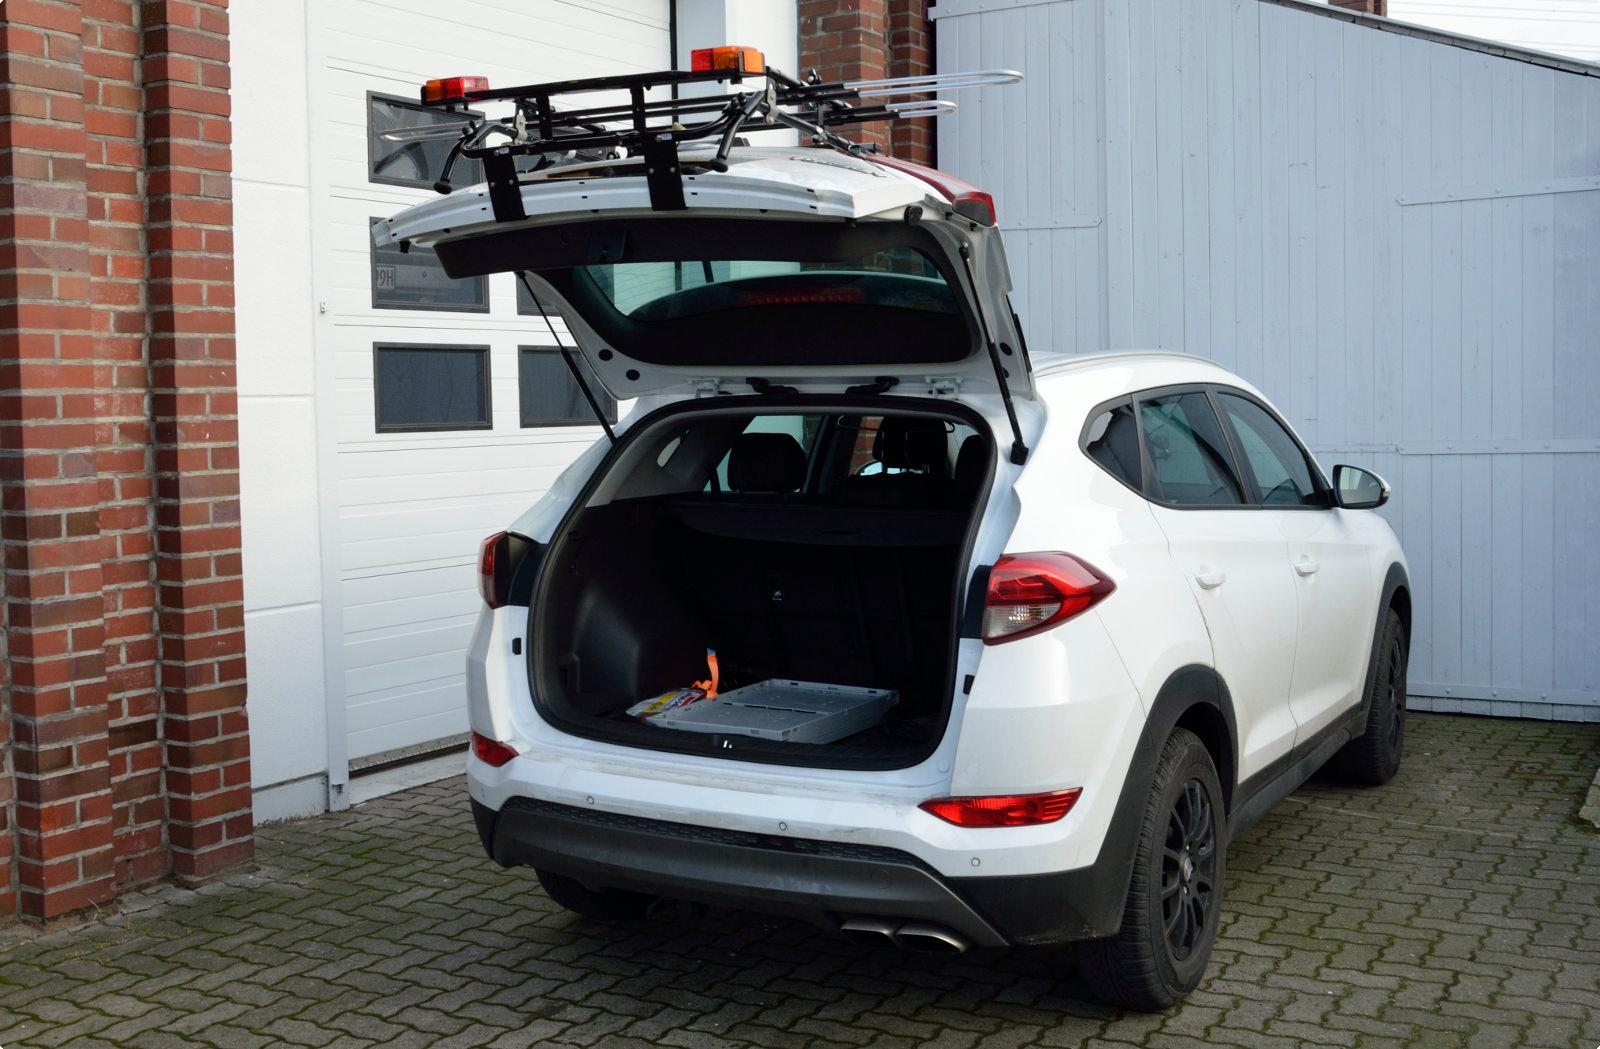 Bicycle Carrier For Hyundai Tucson Tl Paulchen